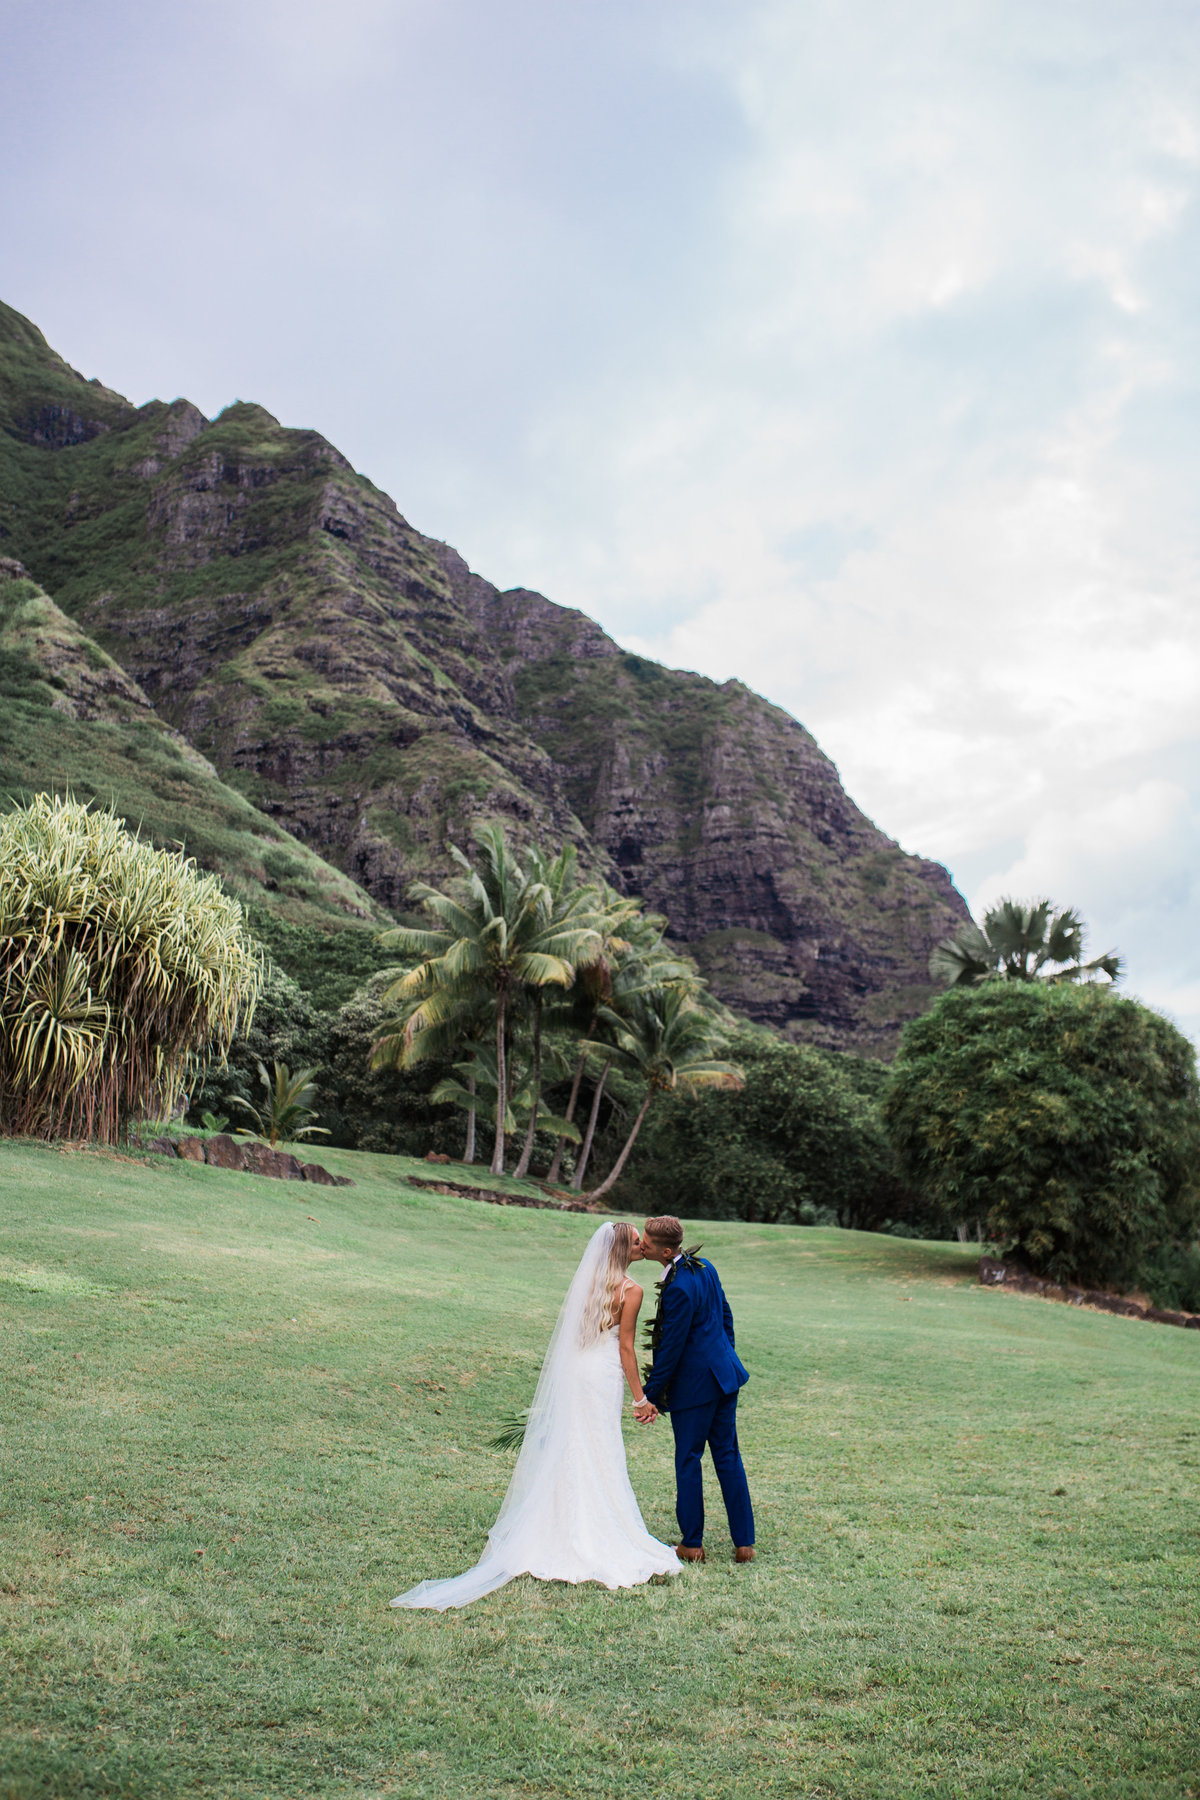 paliku gardens kualoa ranch wedding 6A0936